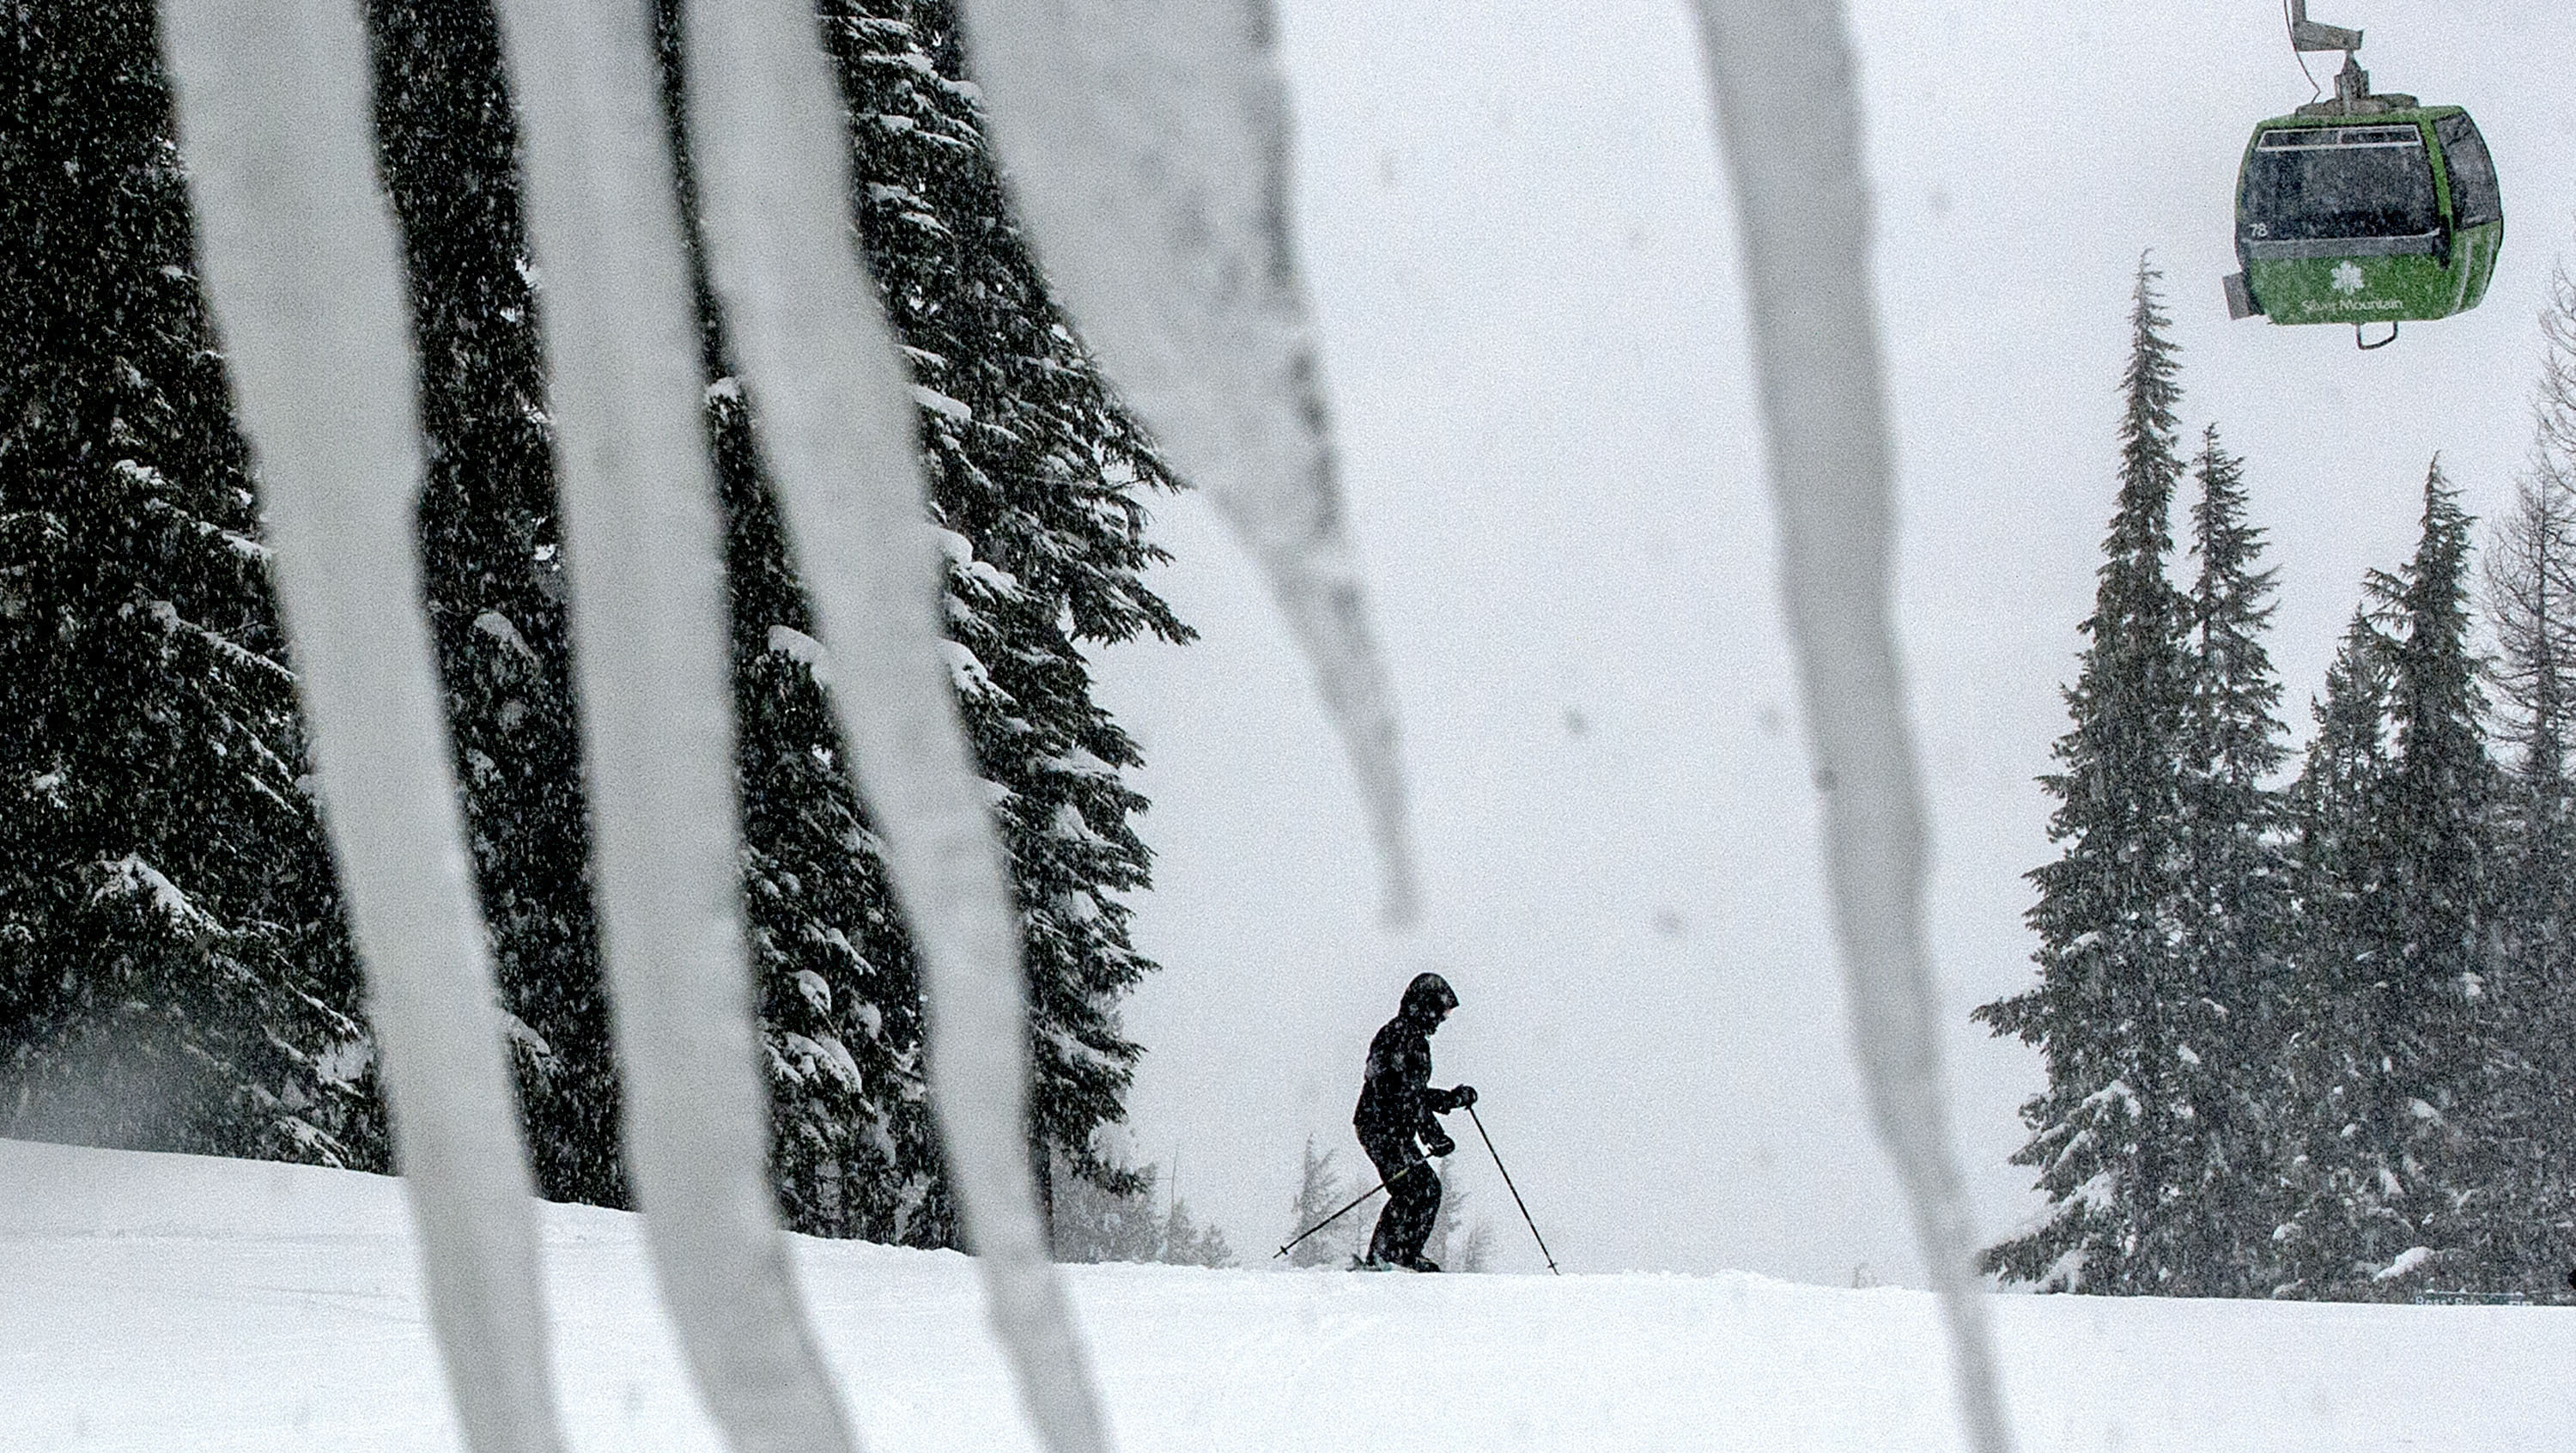 In this Feb. 25, 2013 file photo, a skier takes advantage of the snowy conditions at Silver Mountain in Kellogg, Idaho.